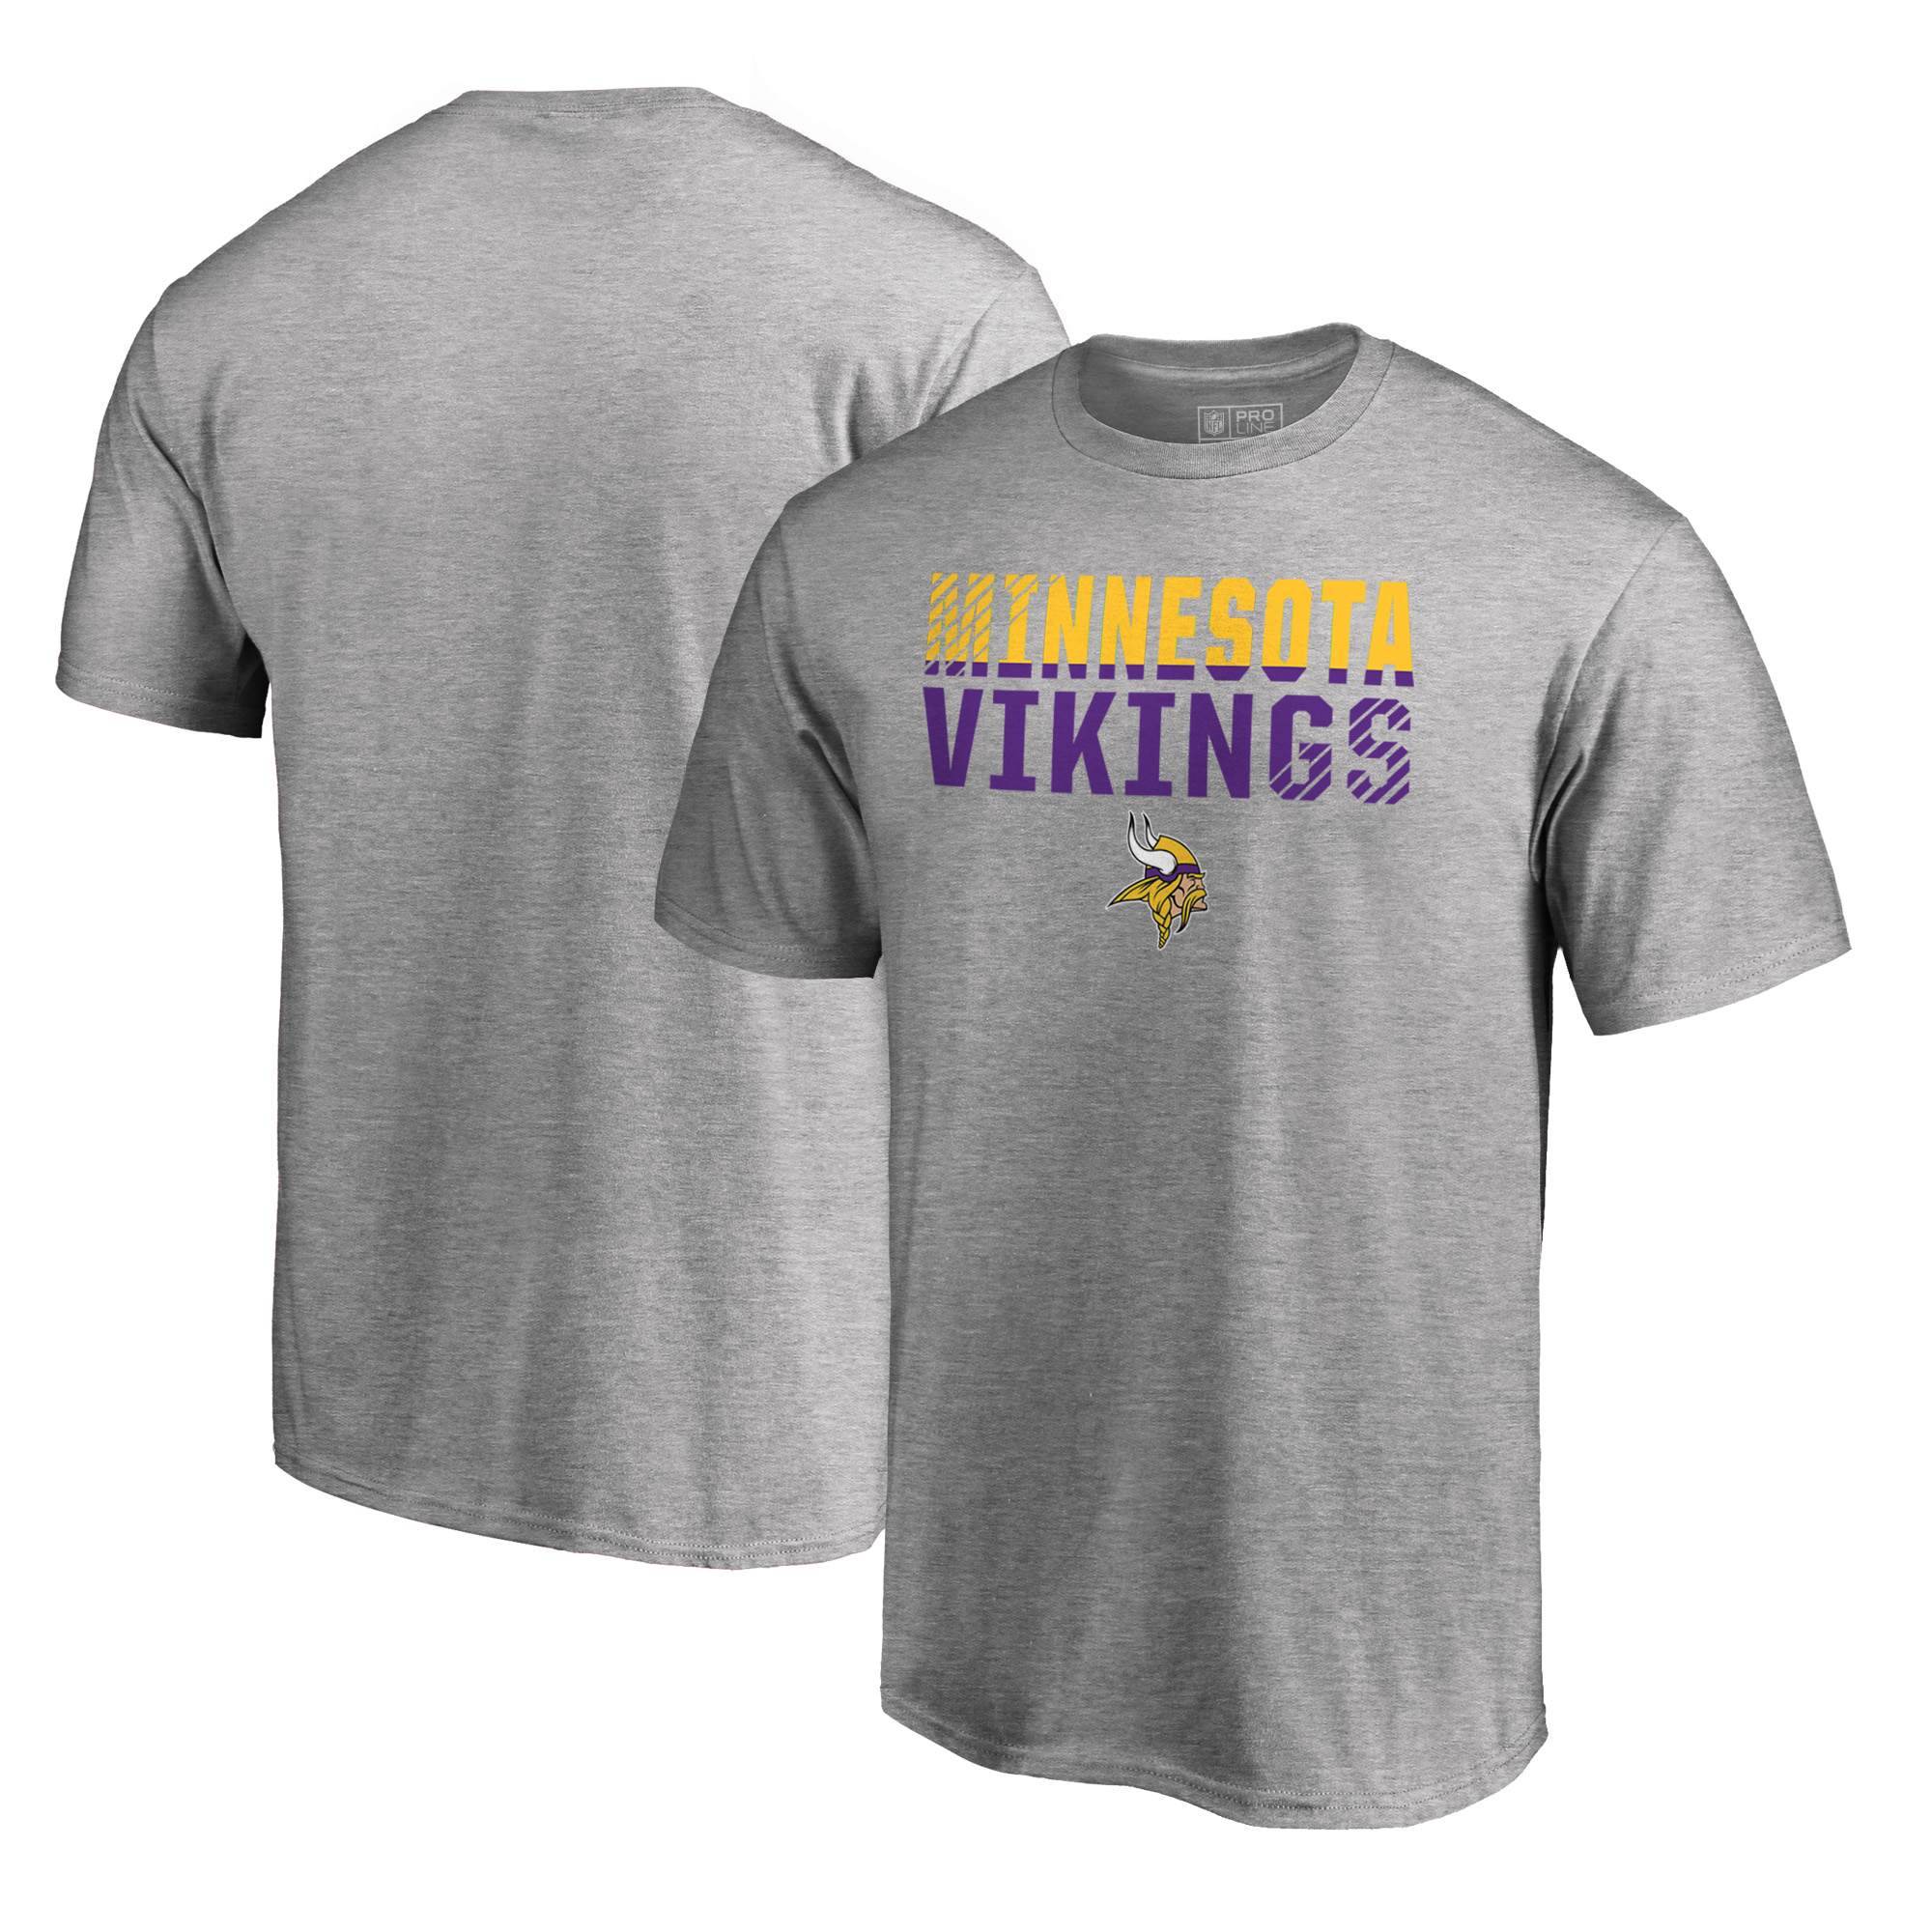 Minnesota Vikings NFL Pro Line by Fanatics Branded Iconic Collection Fade Out Big and Tall T-Shirt - Ash